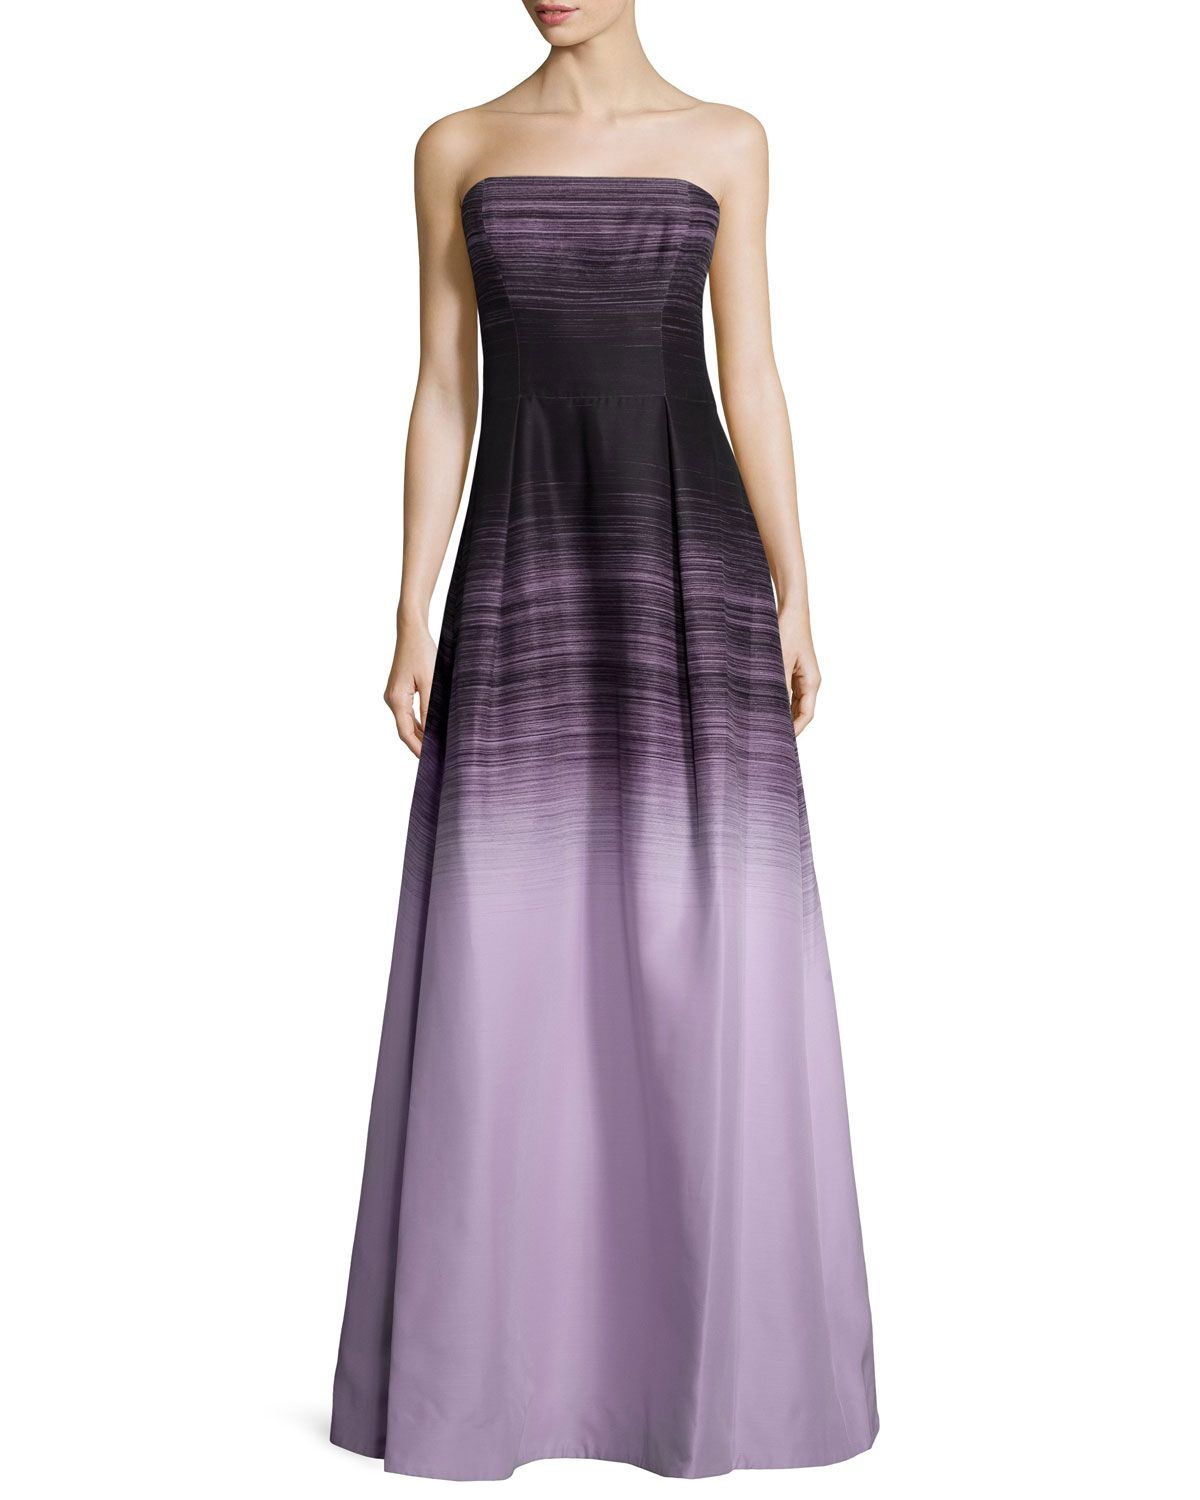 Halston Heritage-Strapless Ombre Ball Gown Black/Thistle | Dresses ...